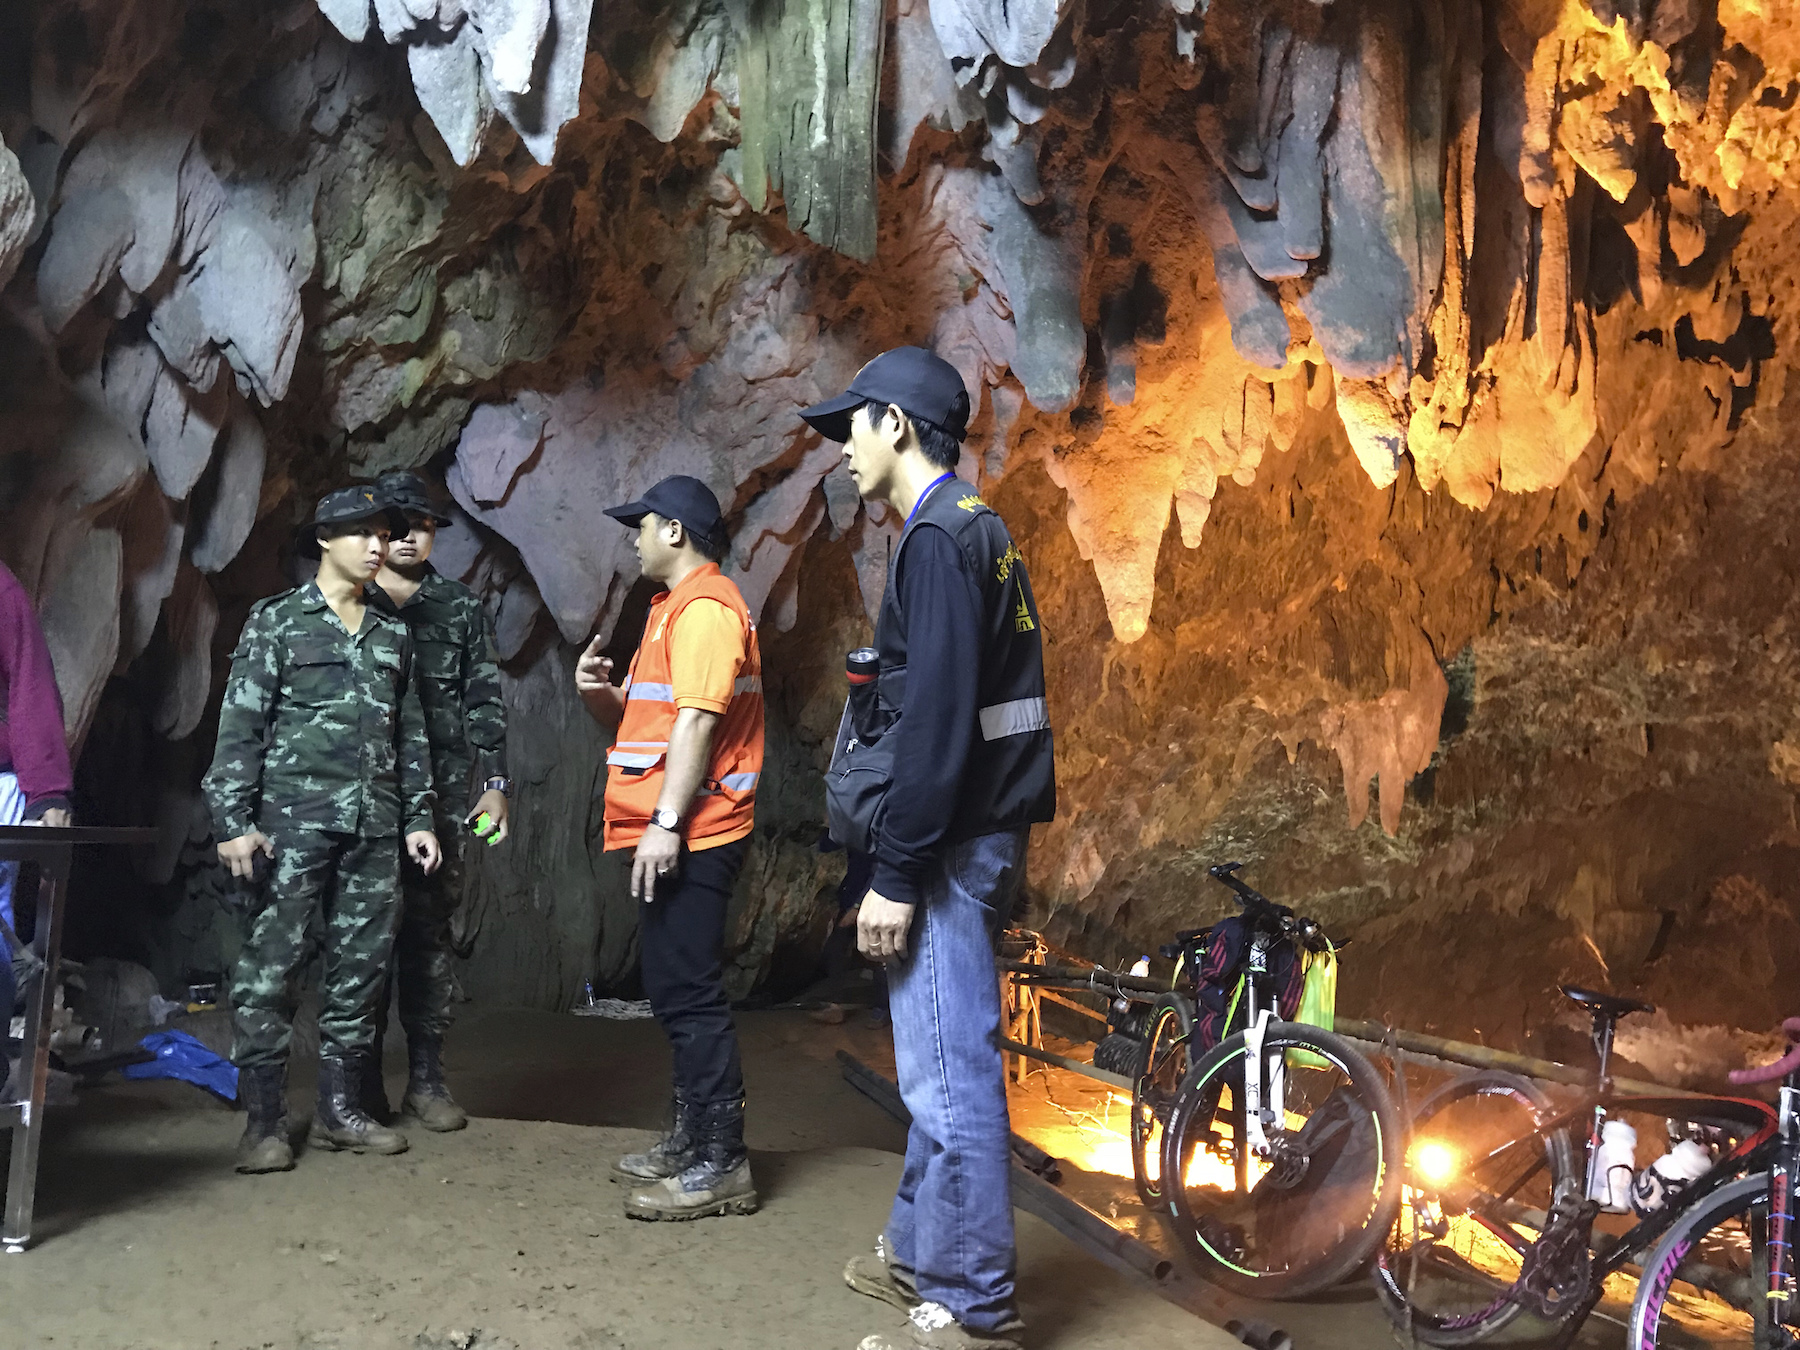 "<div class=""meta image-caption""><div class=""origin-logo origin-image ap""><span>AP</span></div><span class=""caption-text"">Members of the emergency rescue team talk in the staging area as they continue the search for a young soccer team and their coach believed to be missing in a large cave. (AP Photo/Tassanee Vejpongsa)</span></div>"